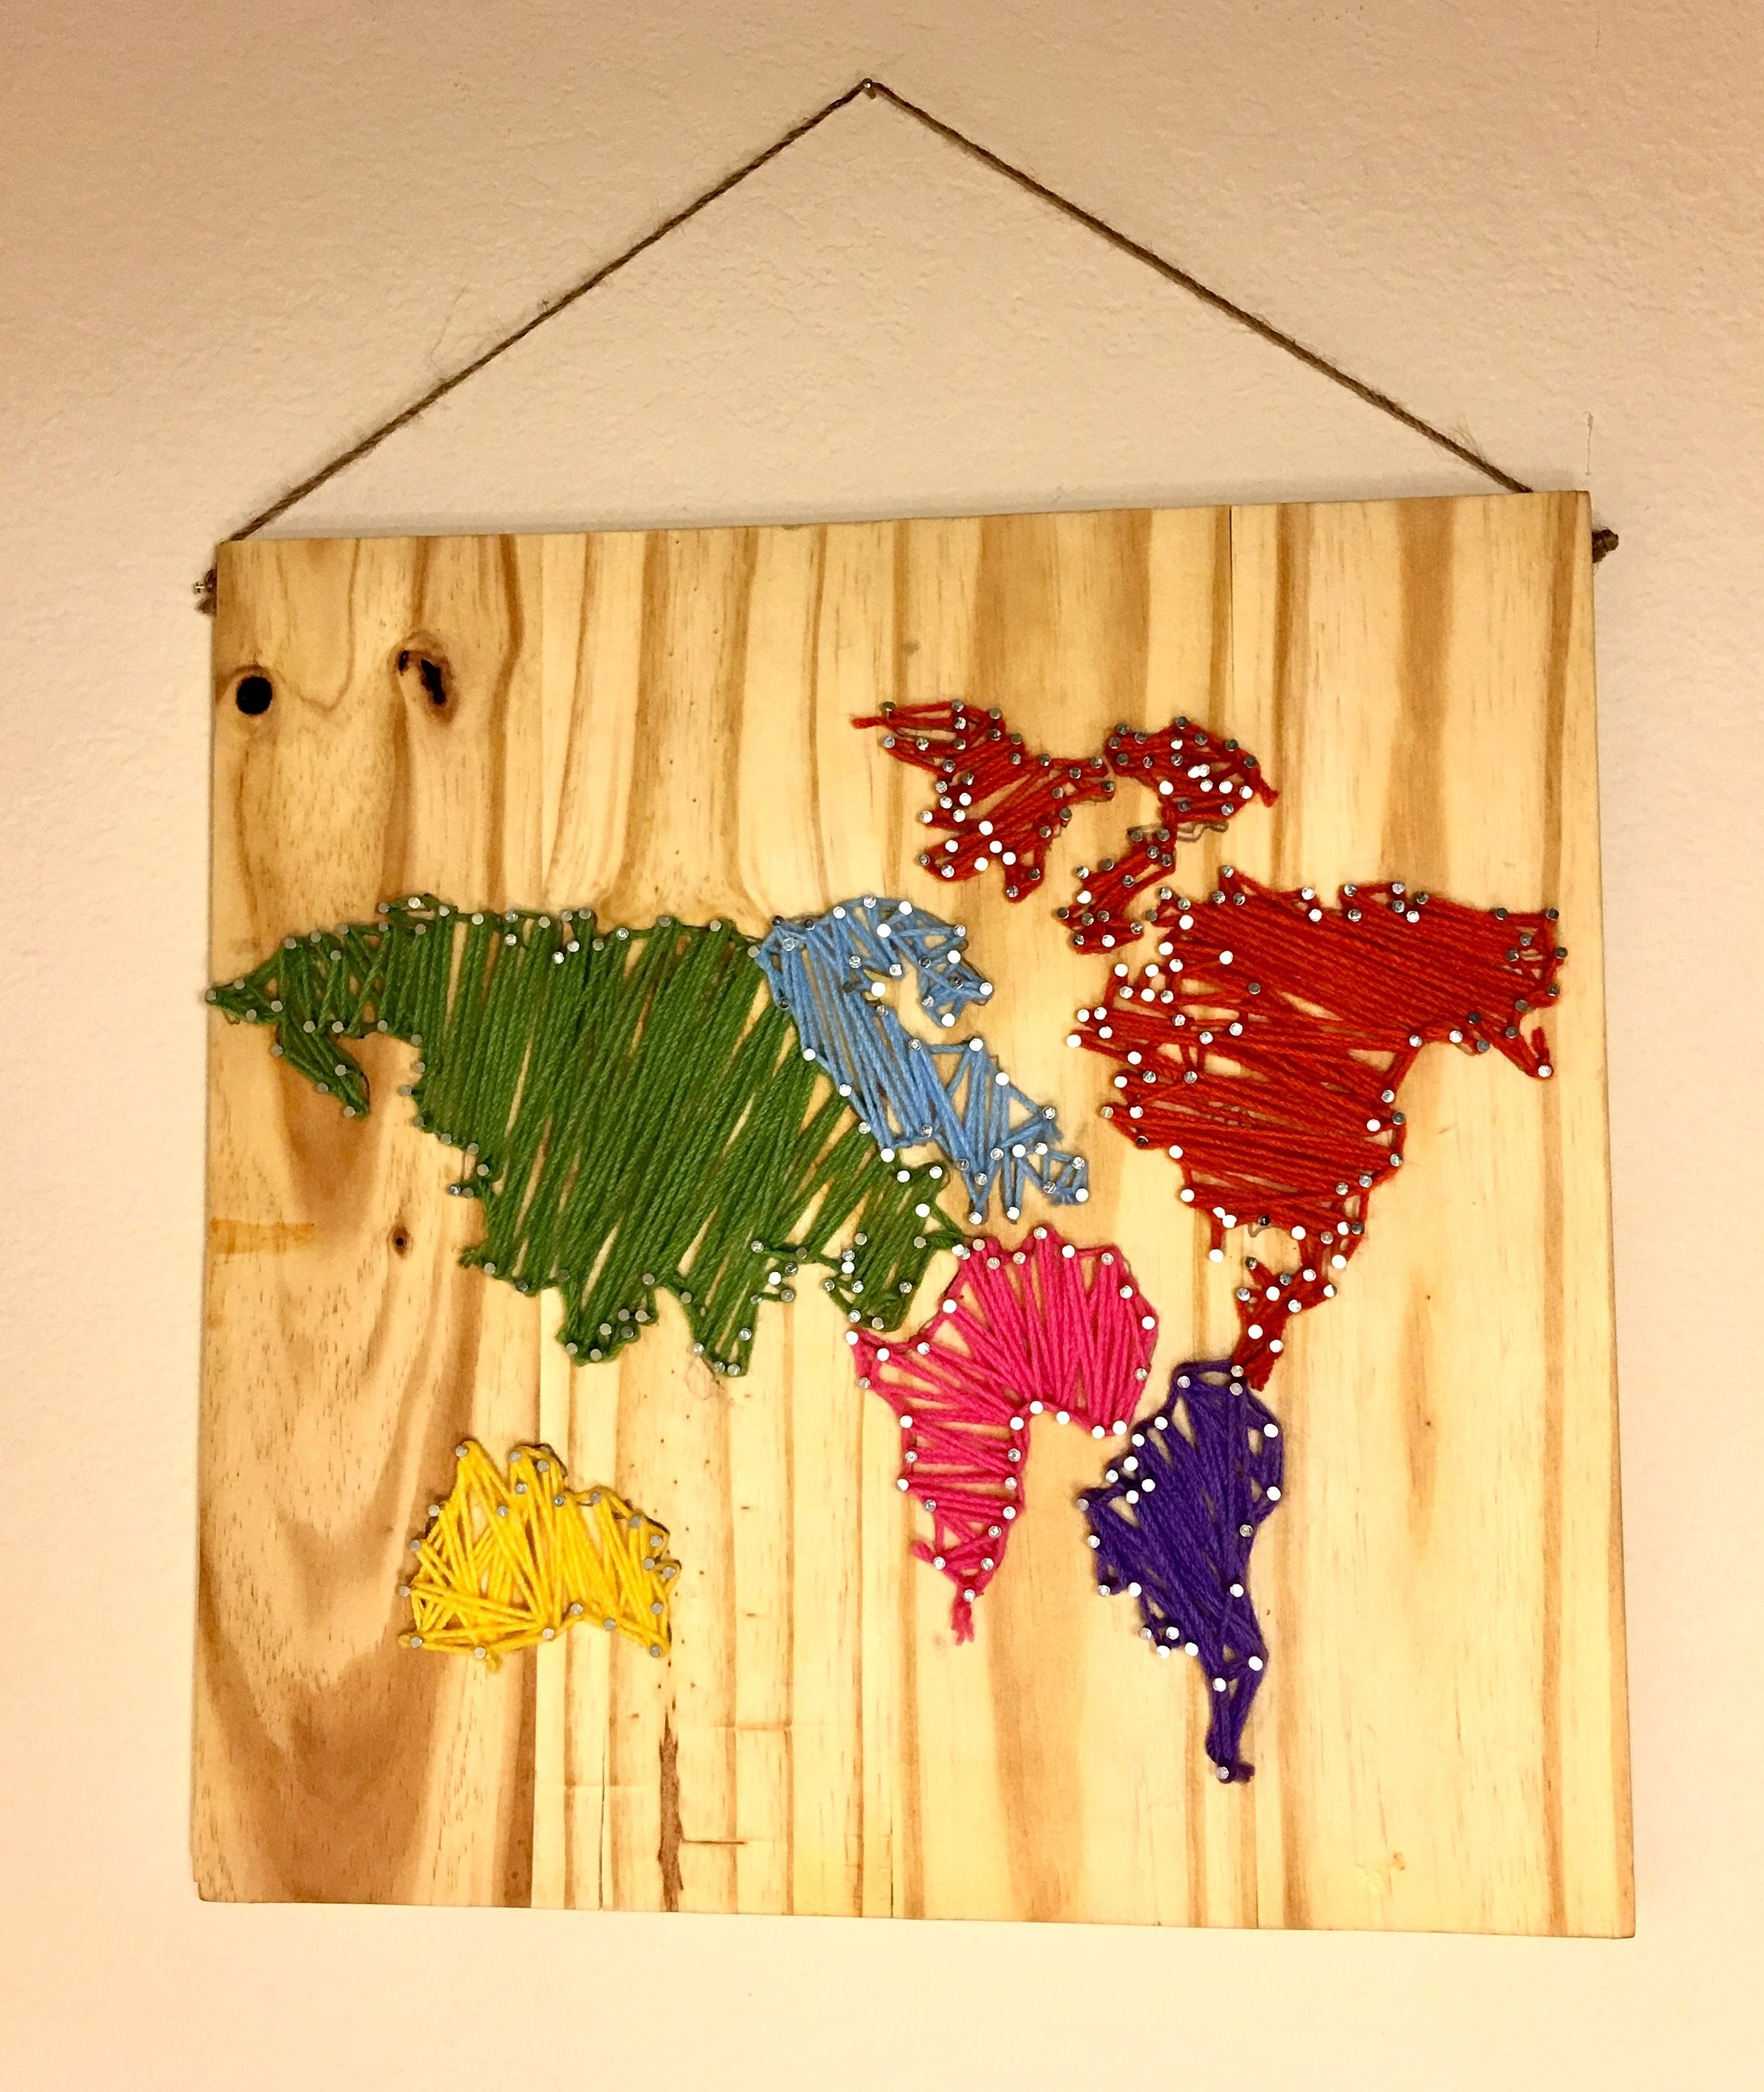 [%Diy World Map Wall Nail String Art [Timelapse] – Youtube Regarding Popular String Map Wall Art|String Map Wall Art In Trendy Diy World Map Wall Nail String Art [Timelapse] – Youtube|Favorite String Map Wall Art Intended For Diy World Map Wall Nail String Art [Timelapse] – Youtube|Most Current Diy World Map Wall Nail String Art [Timelapse] – Youtube Intended For String Map Wall Art%] (View 1 of 20)